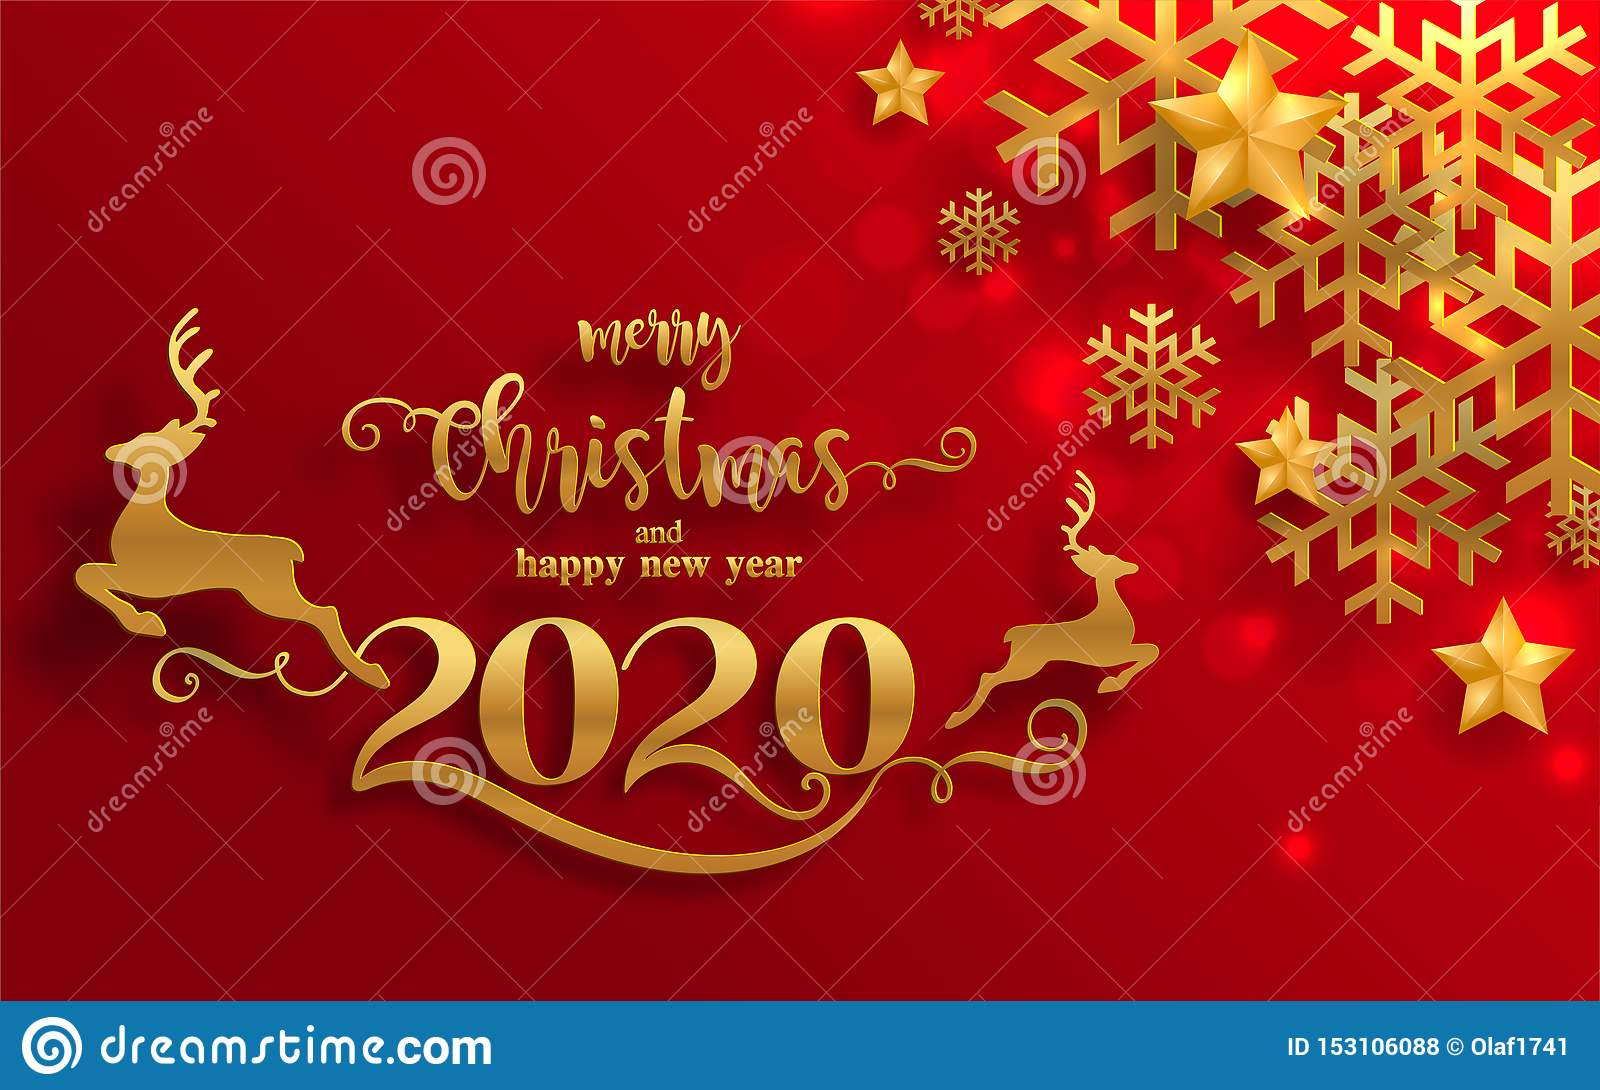 Free Christmas Postcard 2020 Merry Christmas Greetings And Happy New Year 2020 Stock Vector